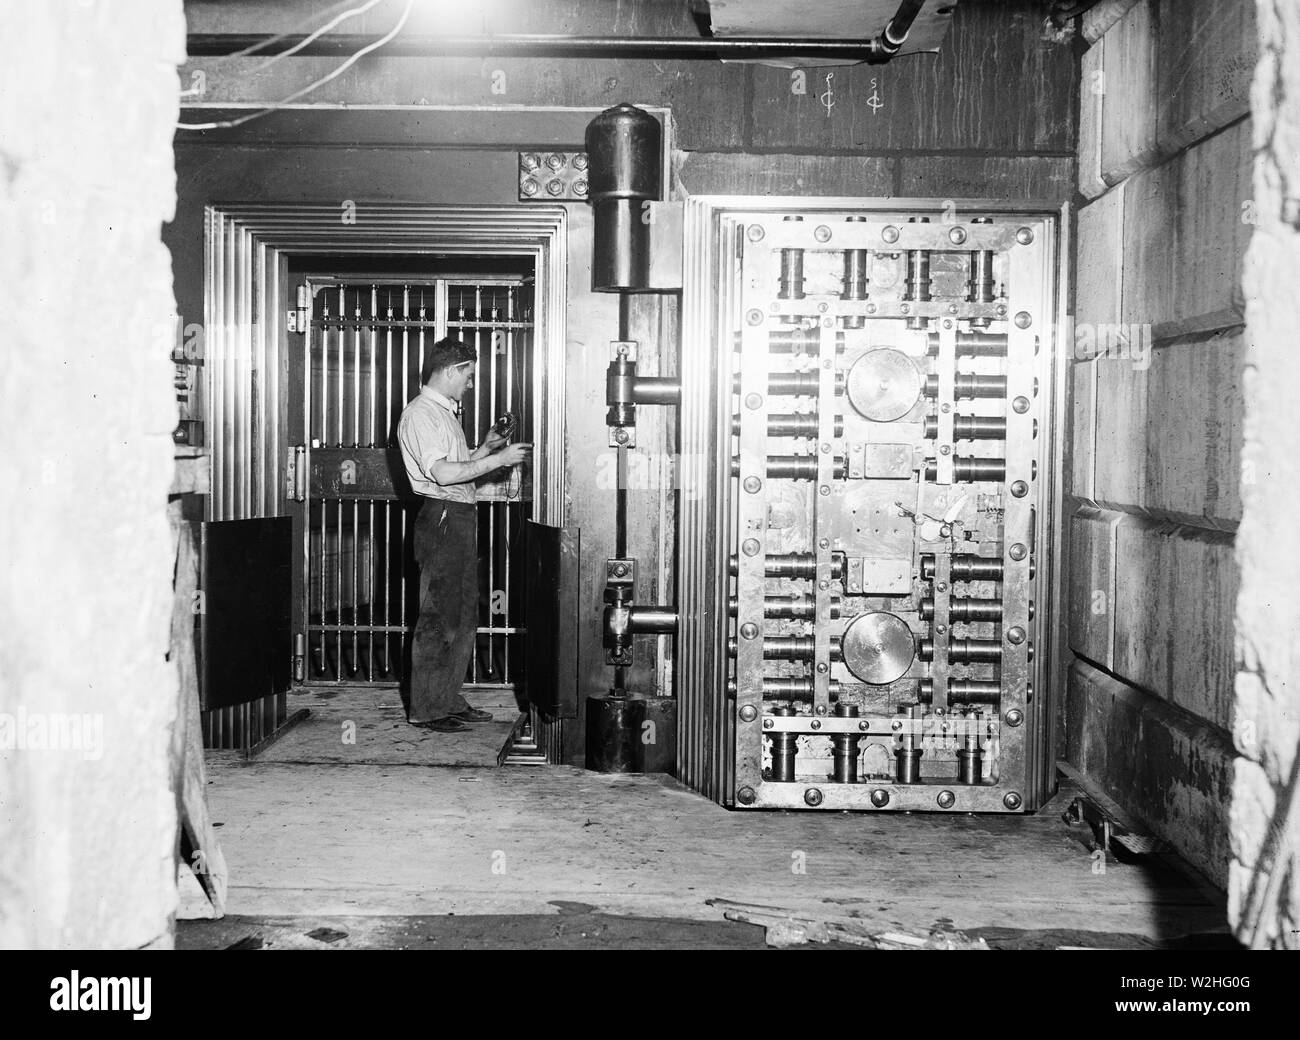 Man working on a large bank vault area ca. 1934 - Stock Image